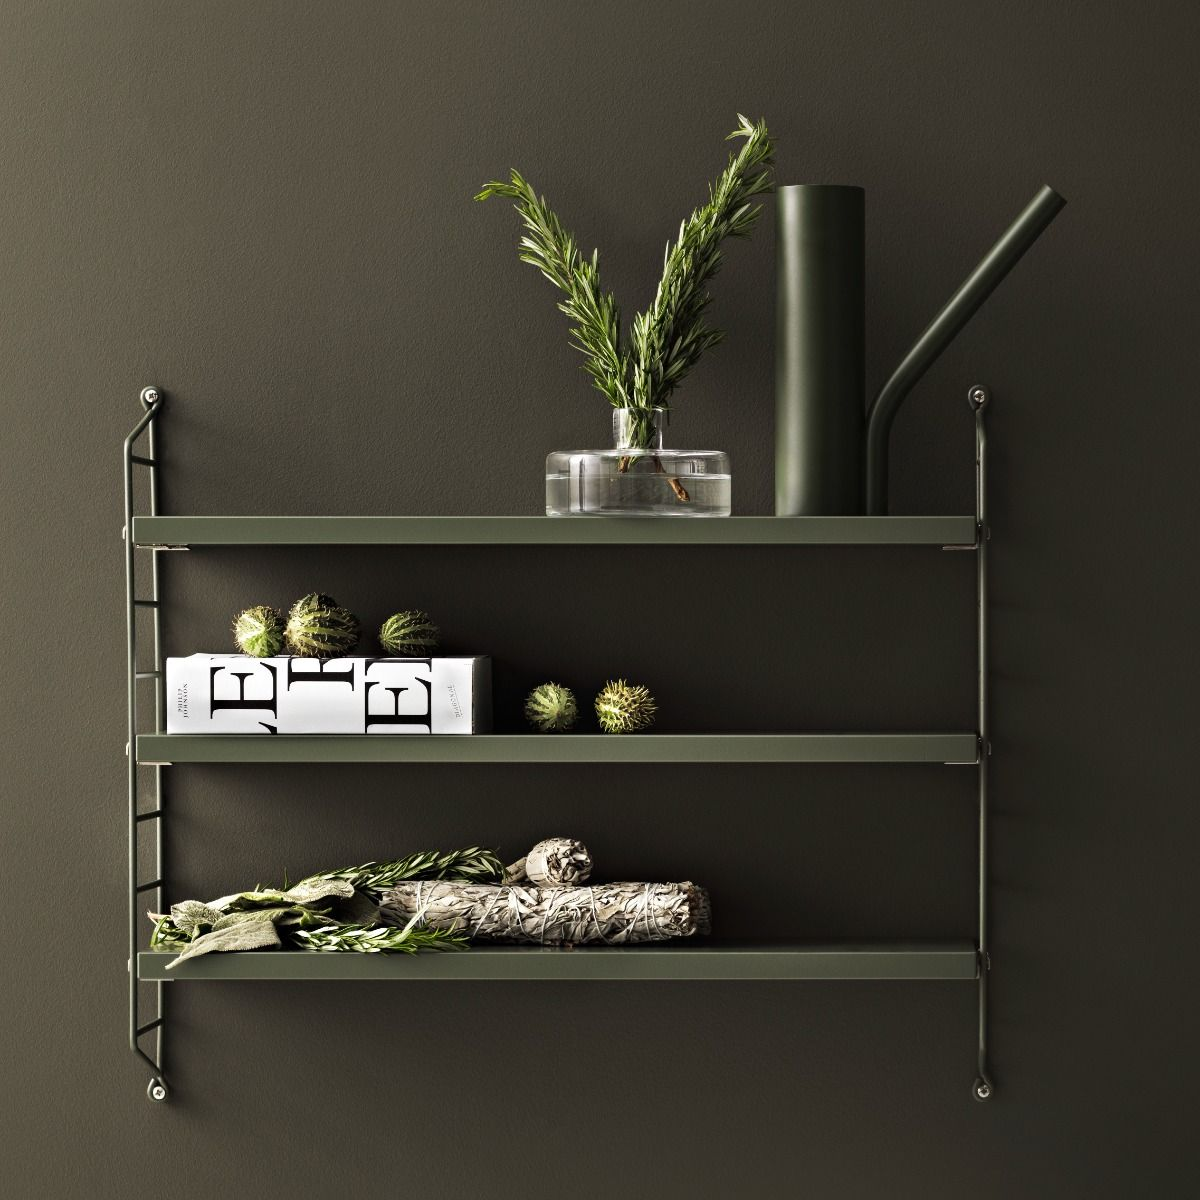 String Shelving Pocket shelf on a green wall and rosemary